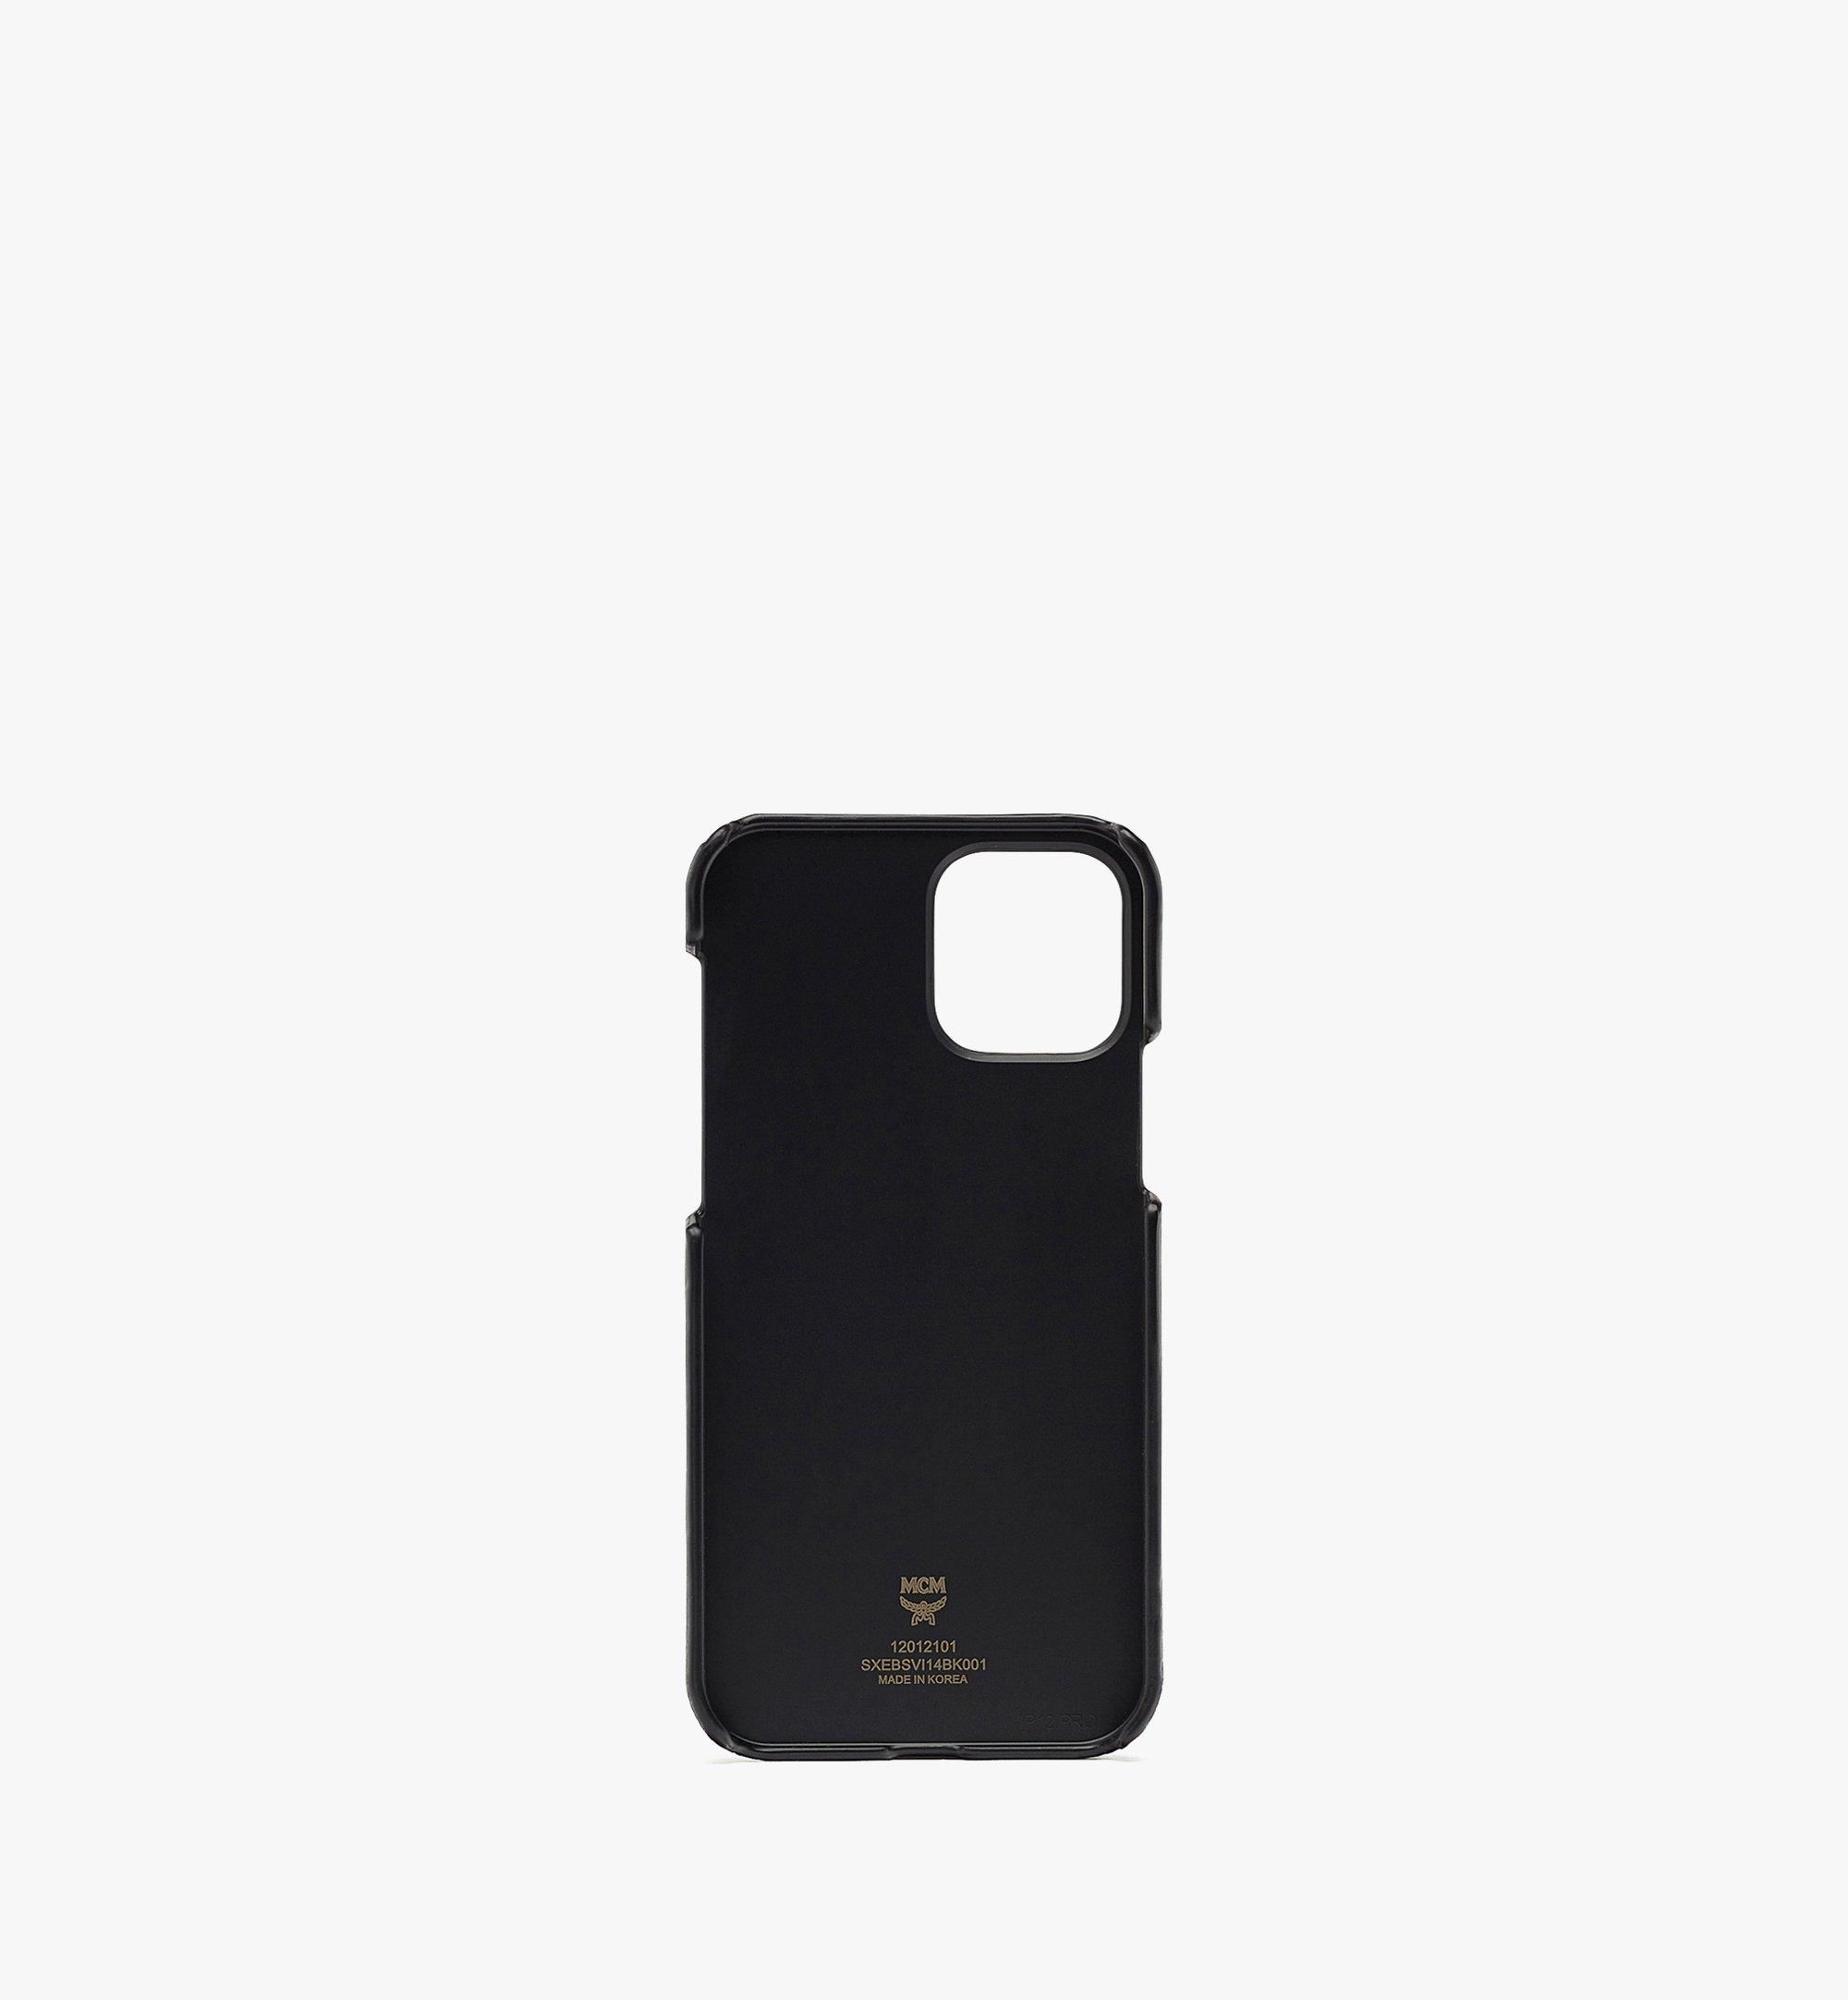 MCM iPhone 12/12 Pro Case in Visetos Original Black MXEBSVI14BK001 Alternate View 2